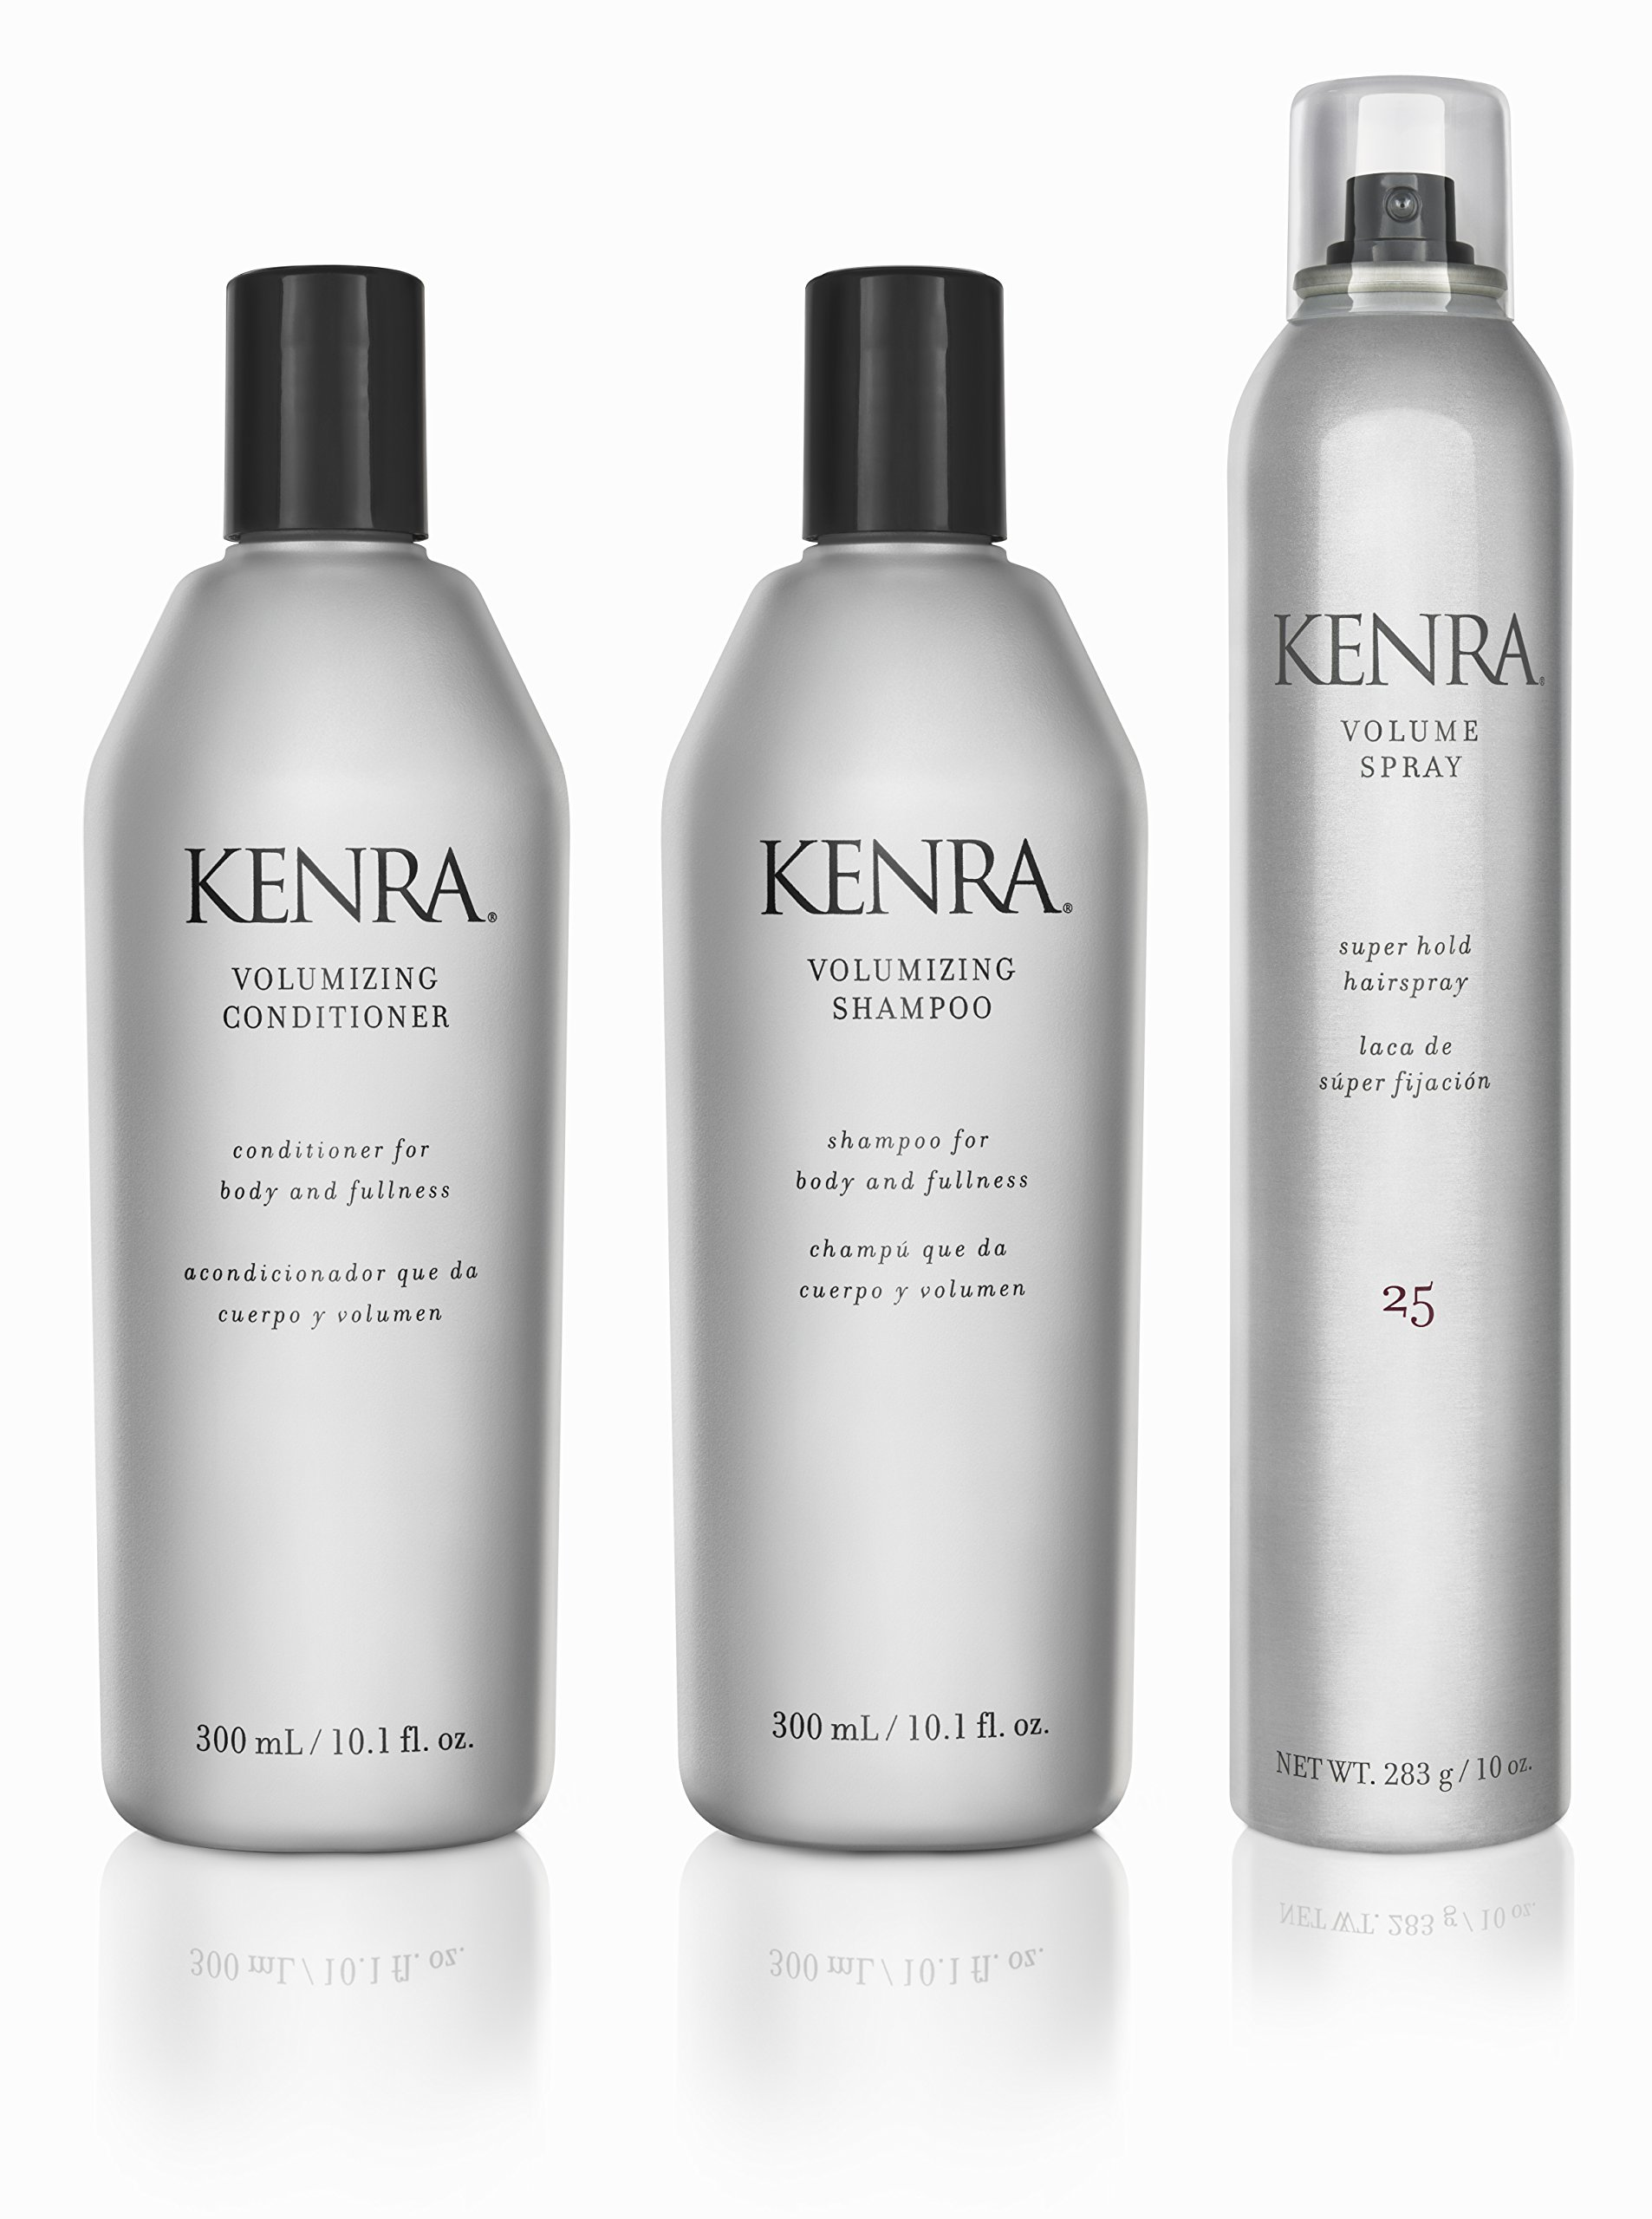 Kenra Volume Shampoo Conditioner Hairspray Gift Set by Kenra